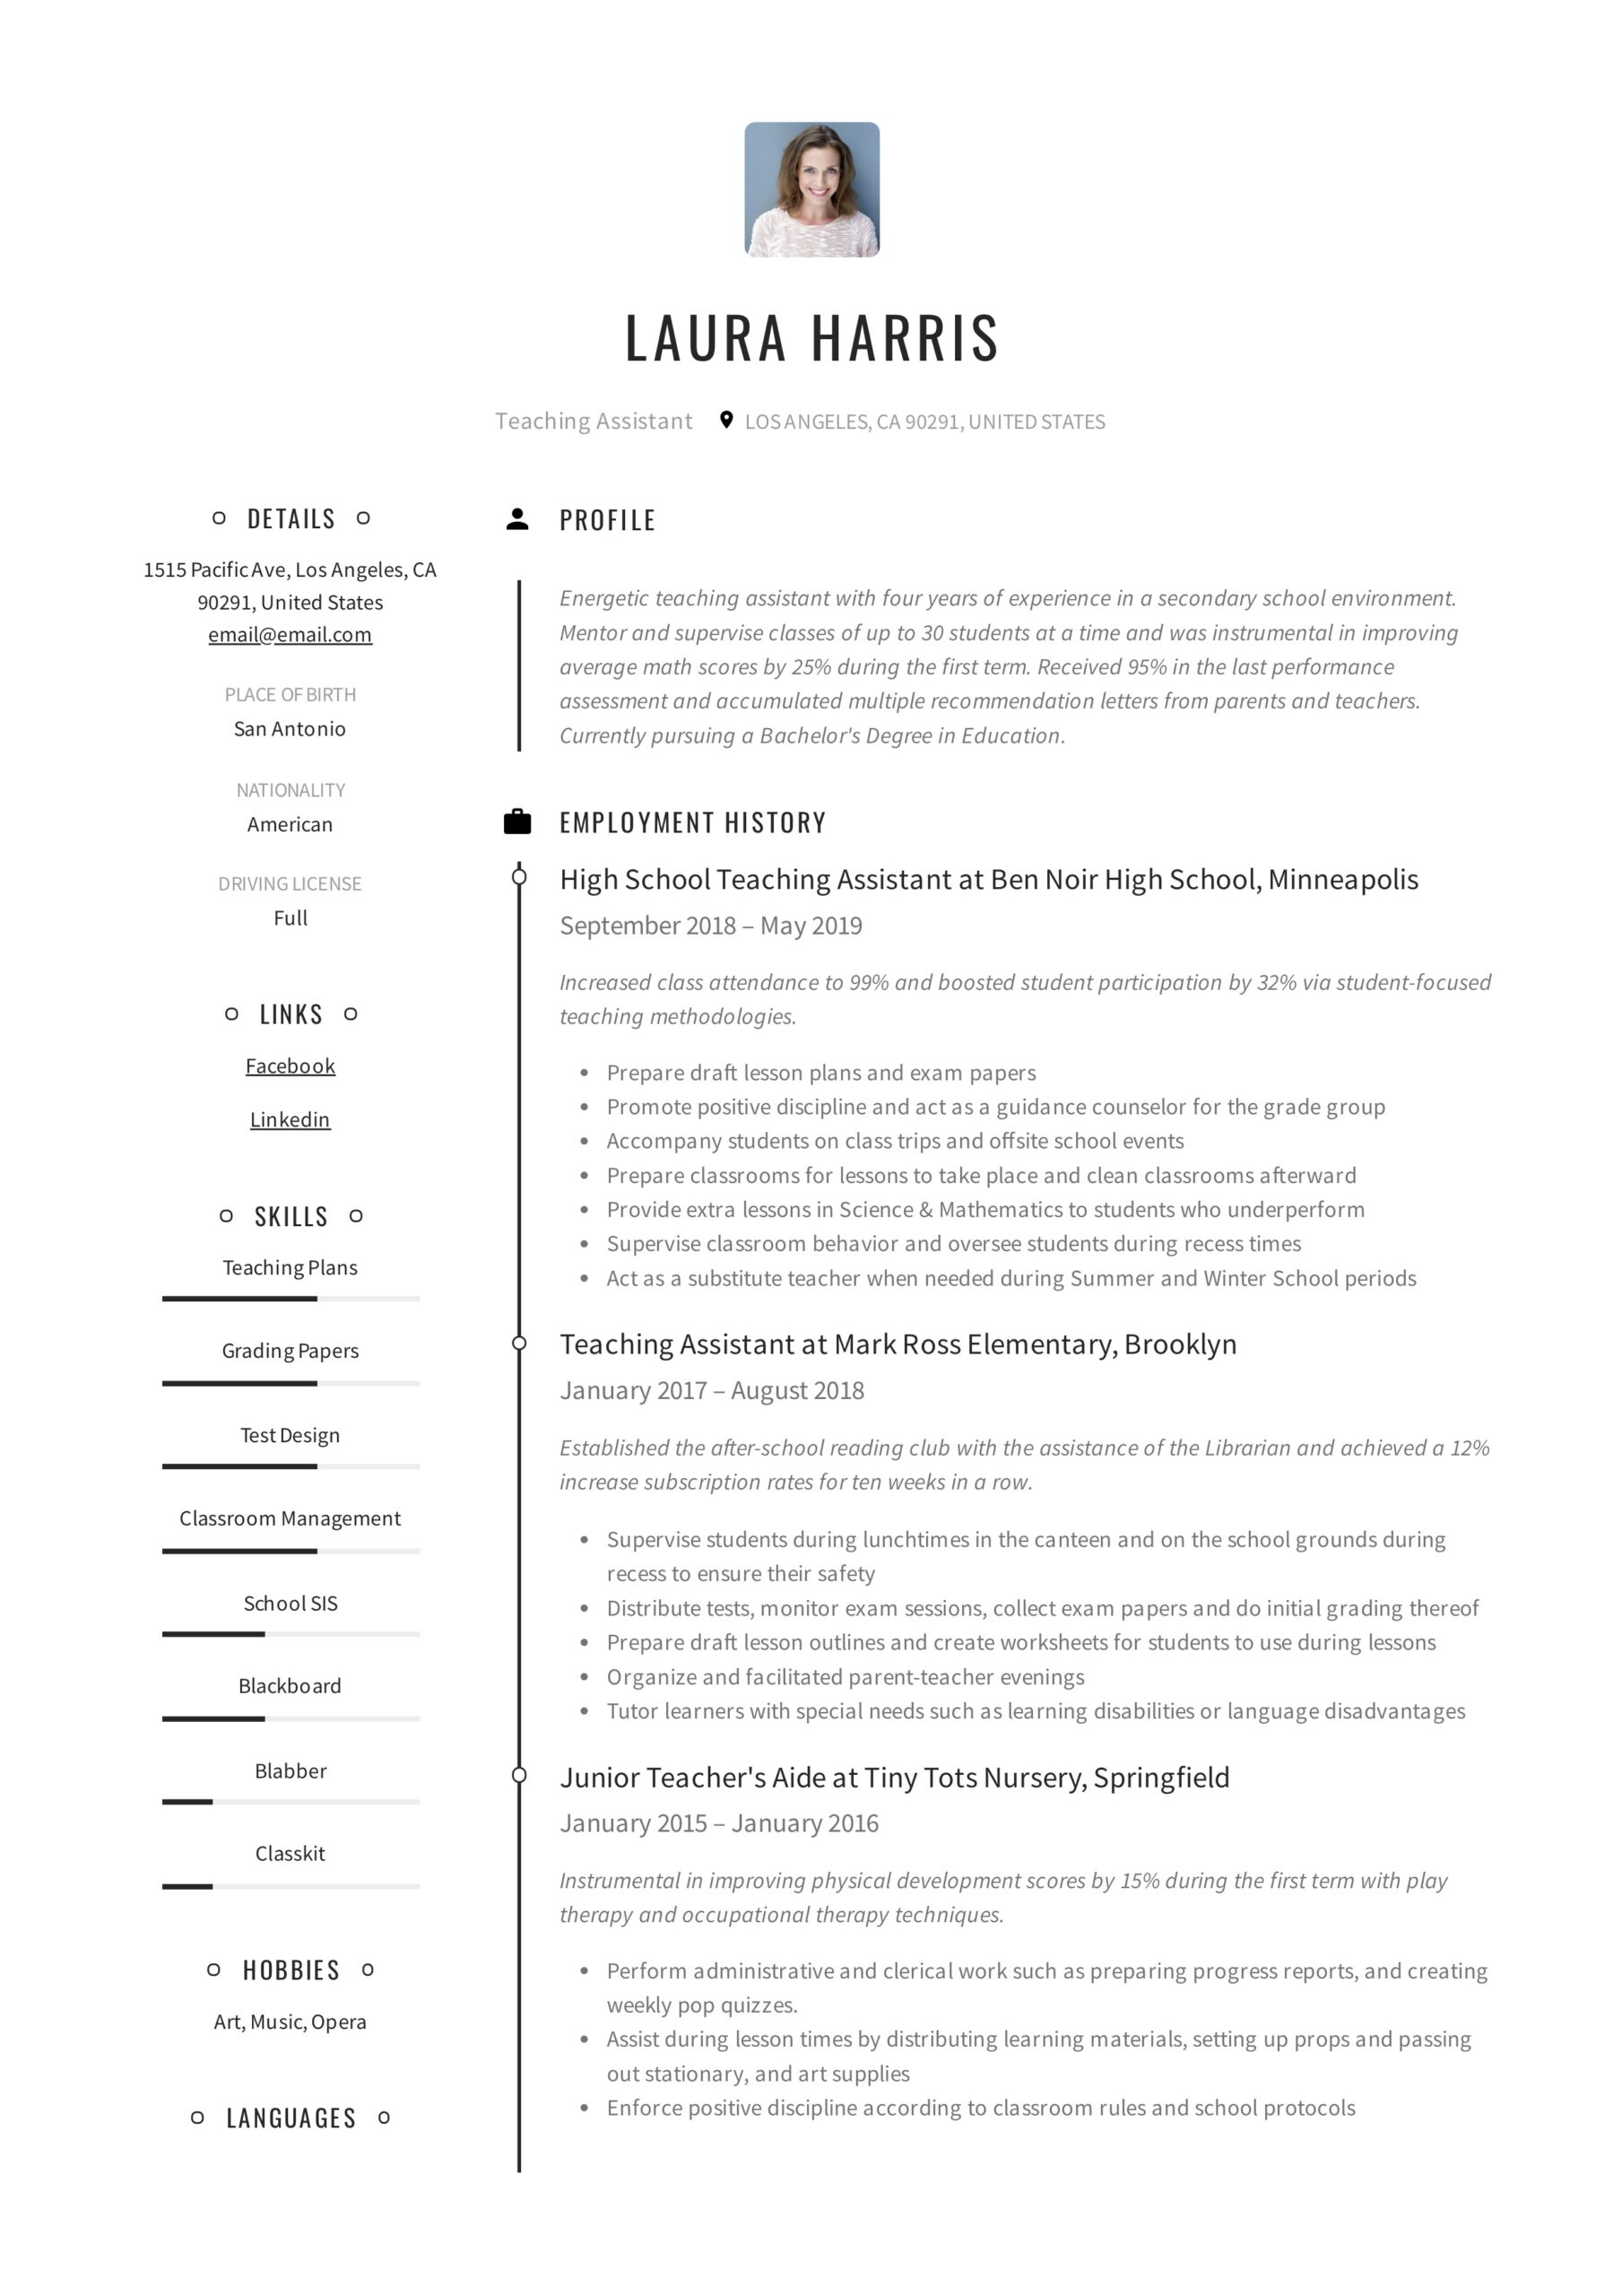 teaching assistant resume writing guide templates pdf childhood education template Resume Early Childhood Education Assistant Resume